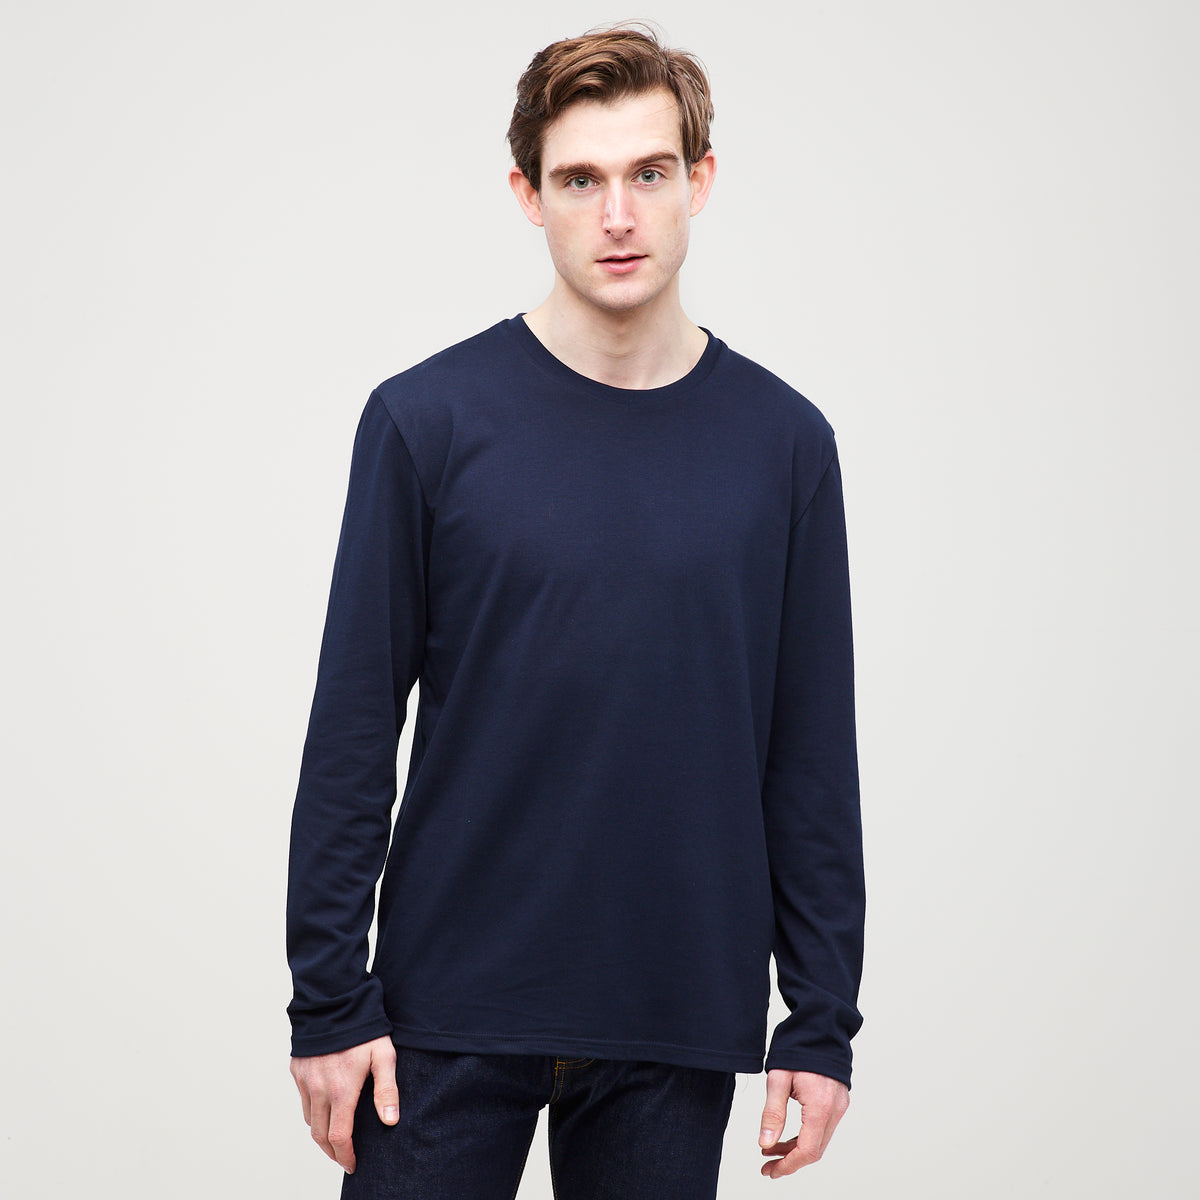 Men's Long Sleeve T-Shirt Navy - Community Clothing